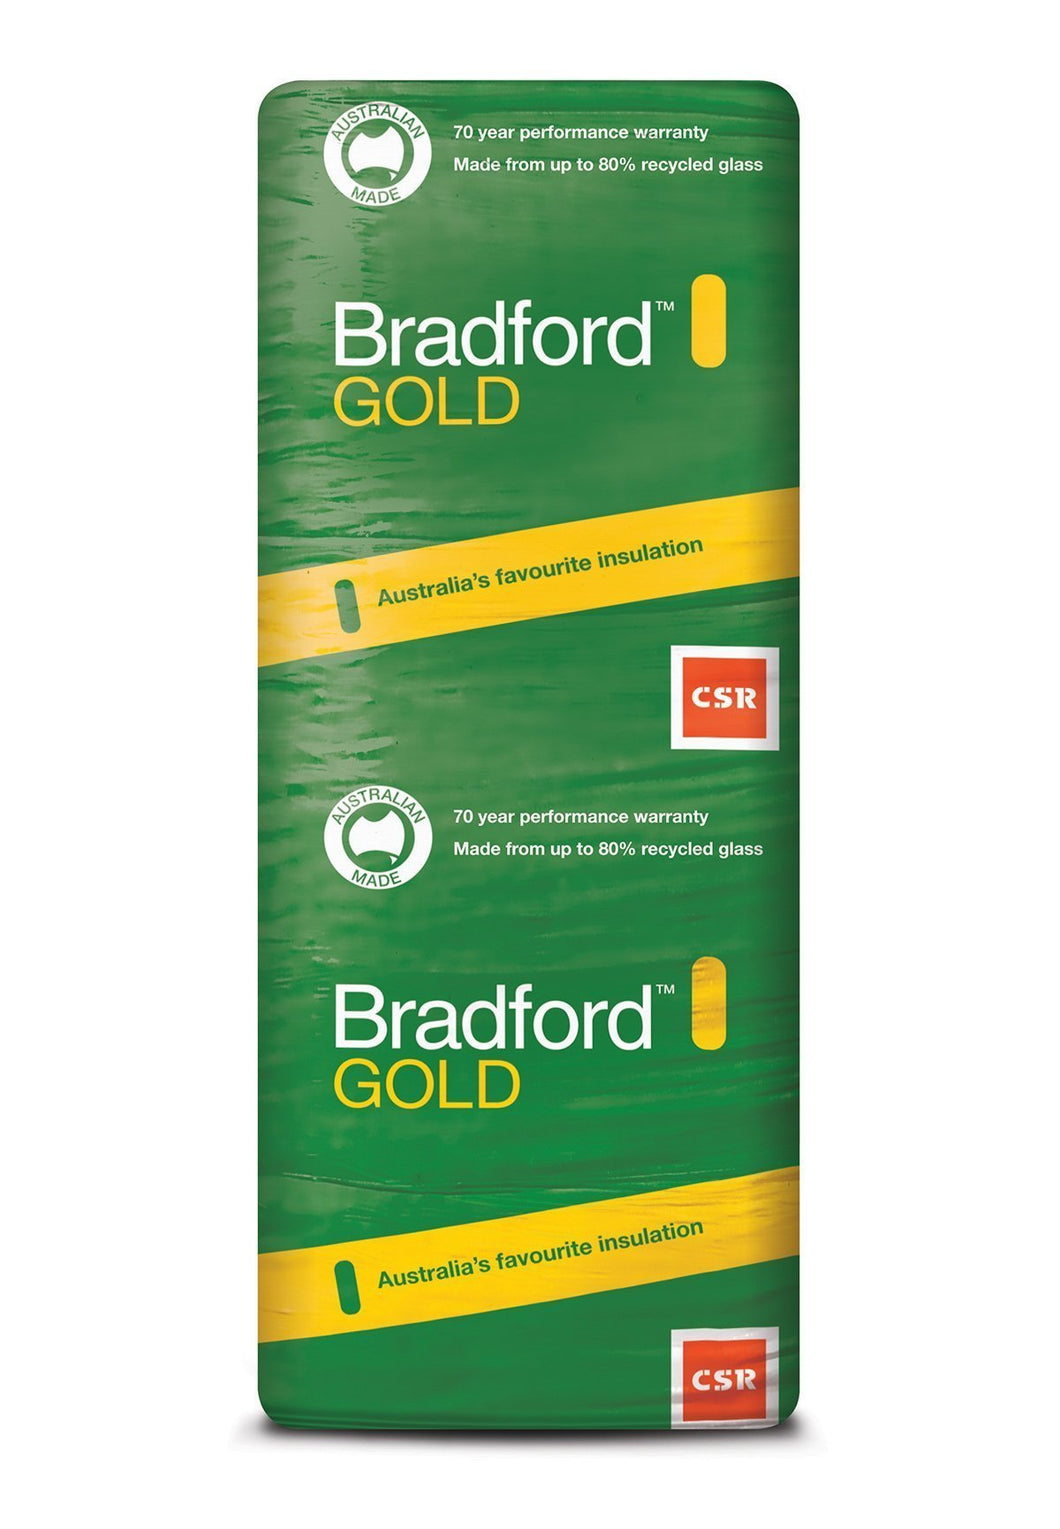 Bradford Gold Ceiling Insulation Batts - R3.0 - 1160 x 430mm - 8m²/pack - Patnicar Insulation